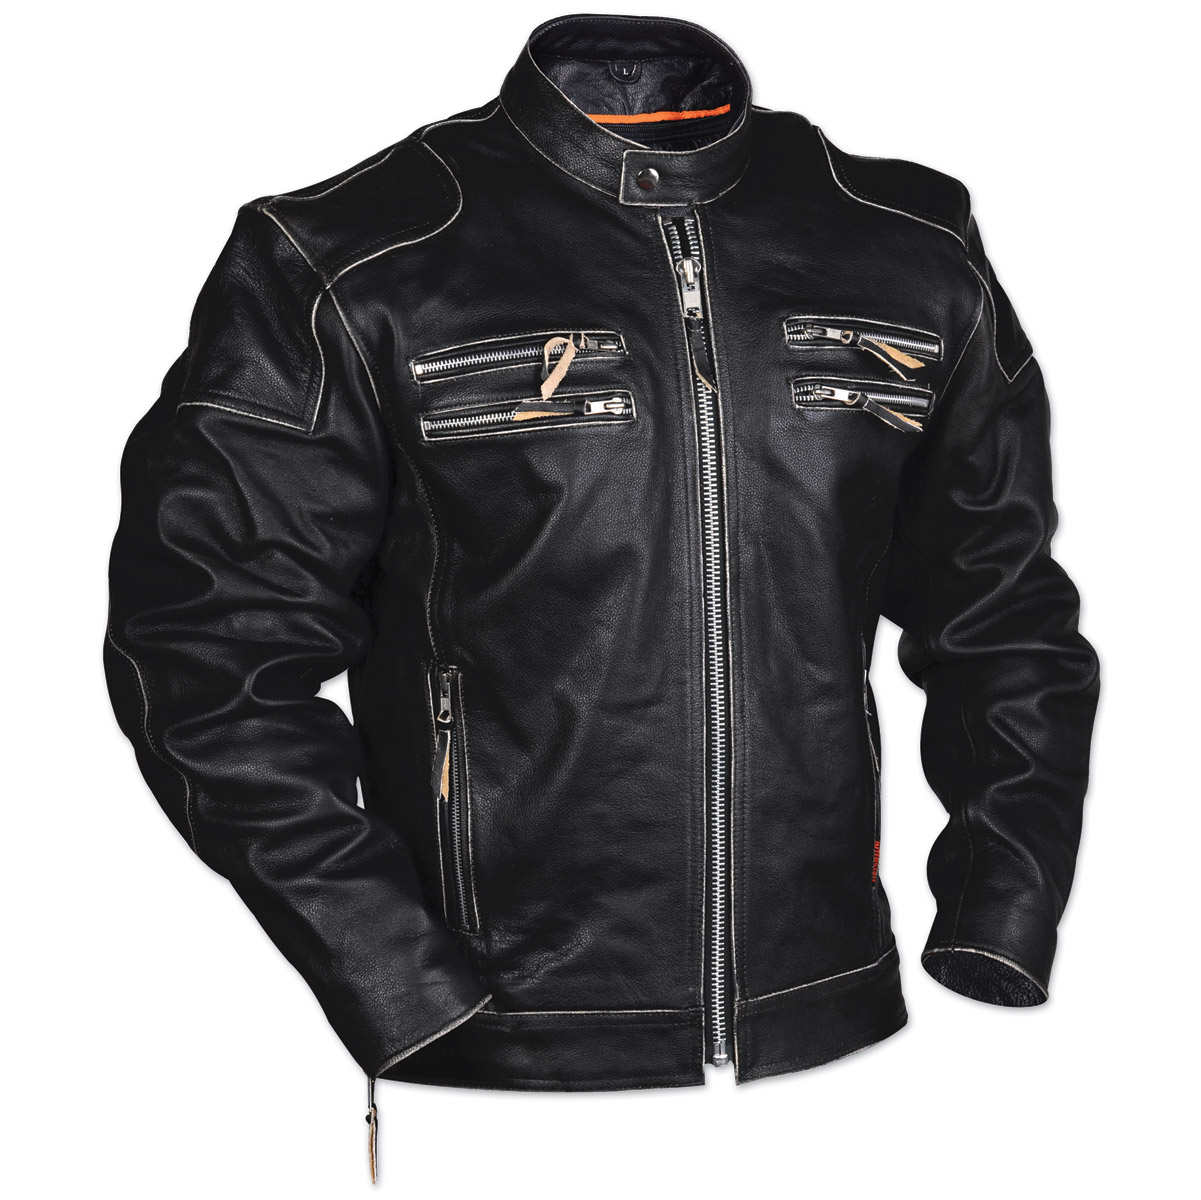 Men&39s Motorcycle Jackets | J&ampP Cycles